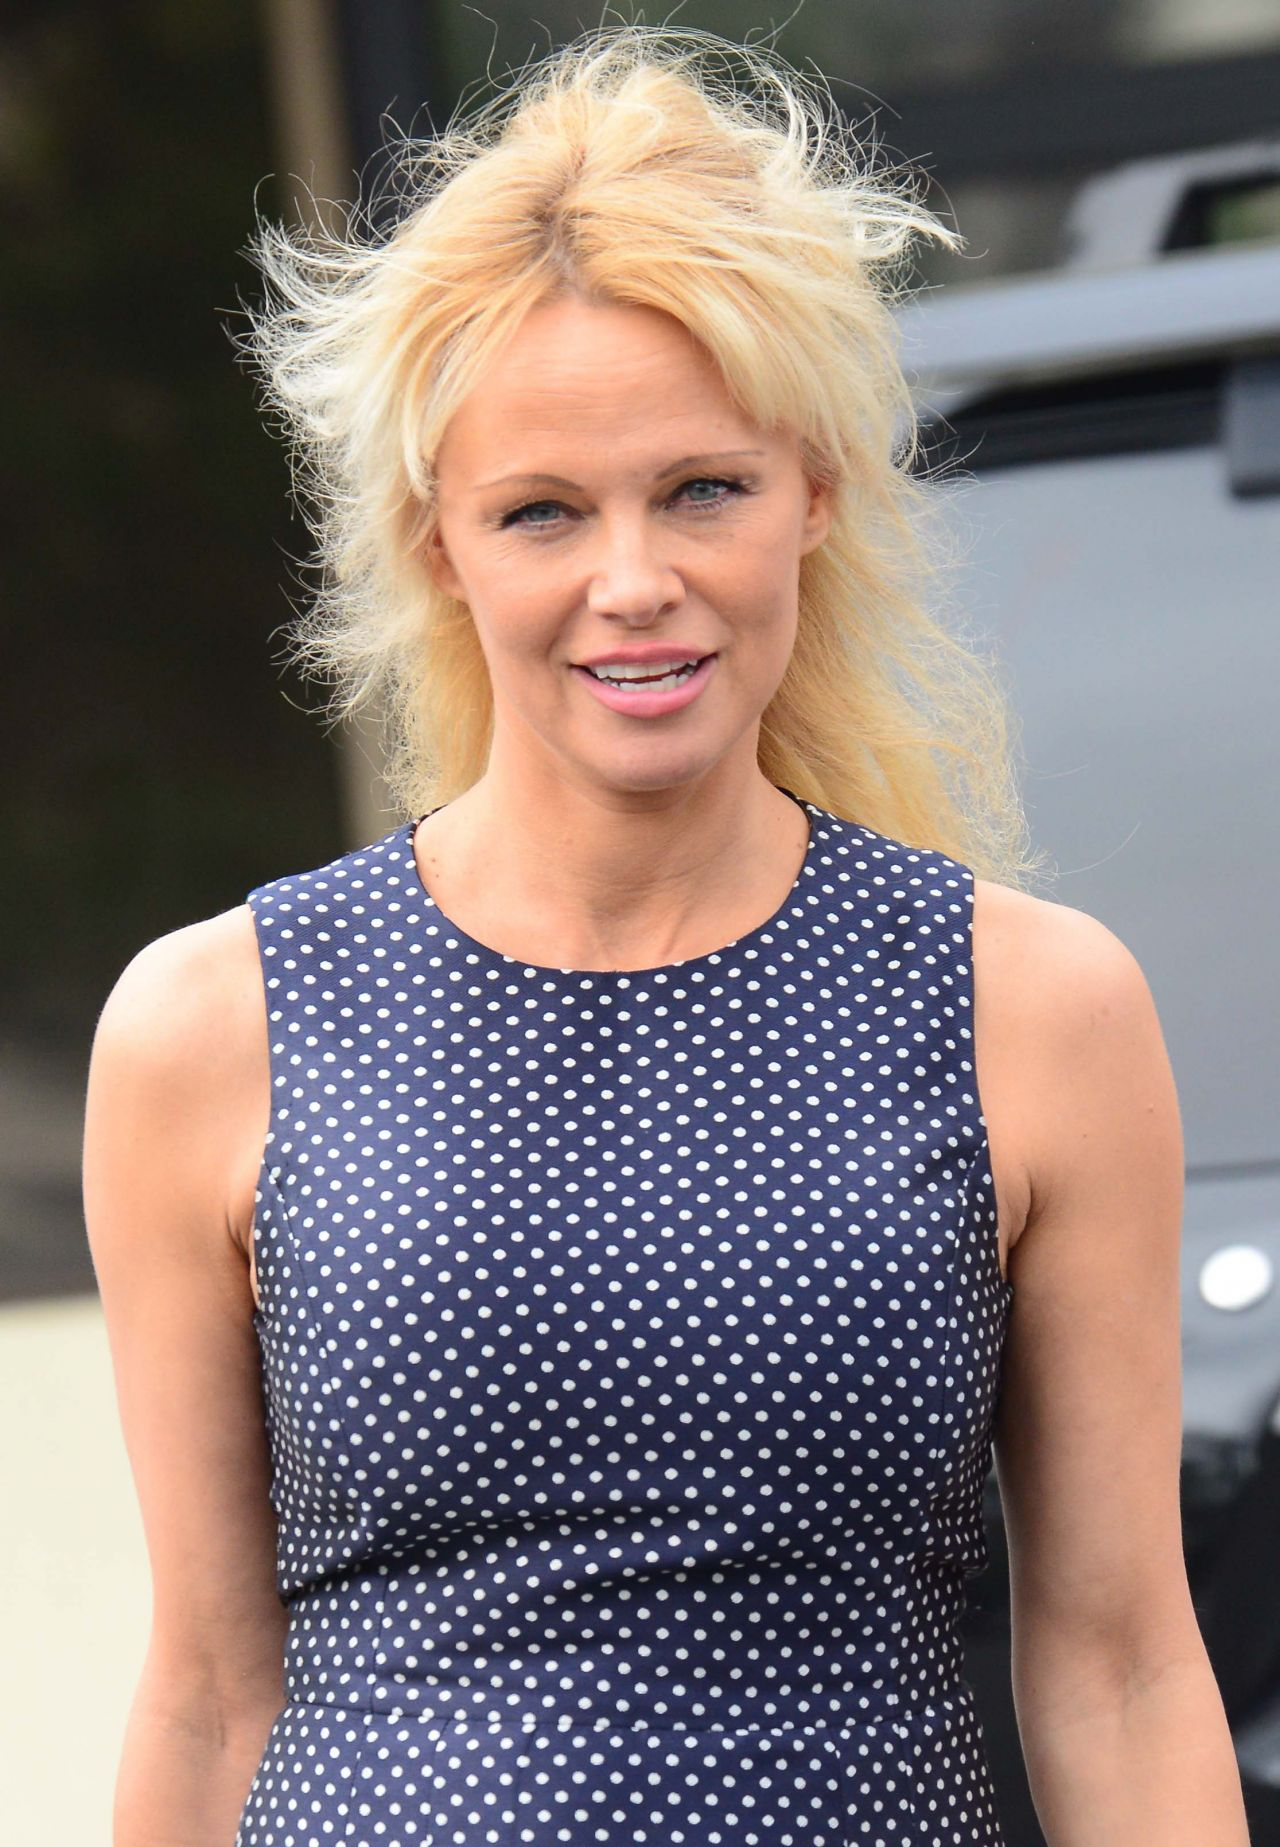 Pamela Anderson at a Hair Salon in Beverly Hills 6/1/2016